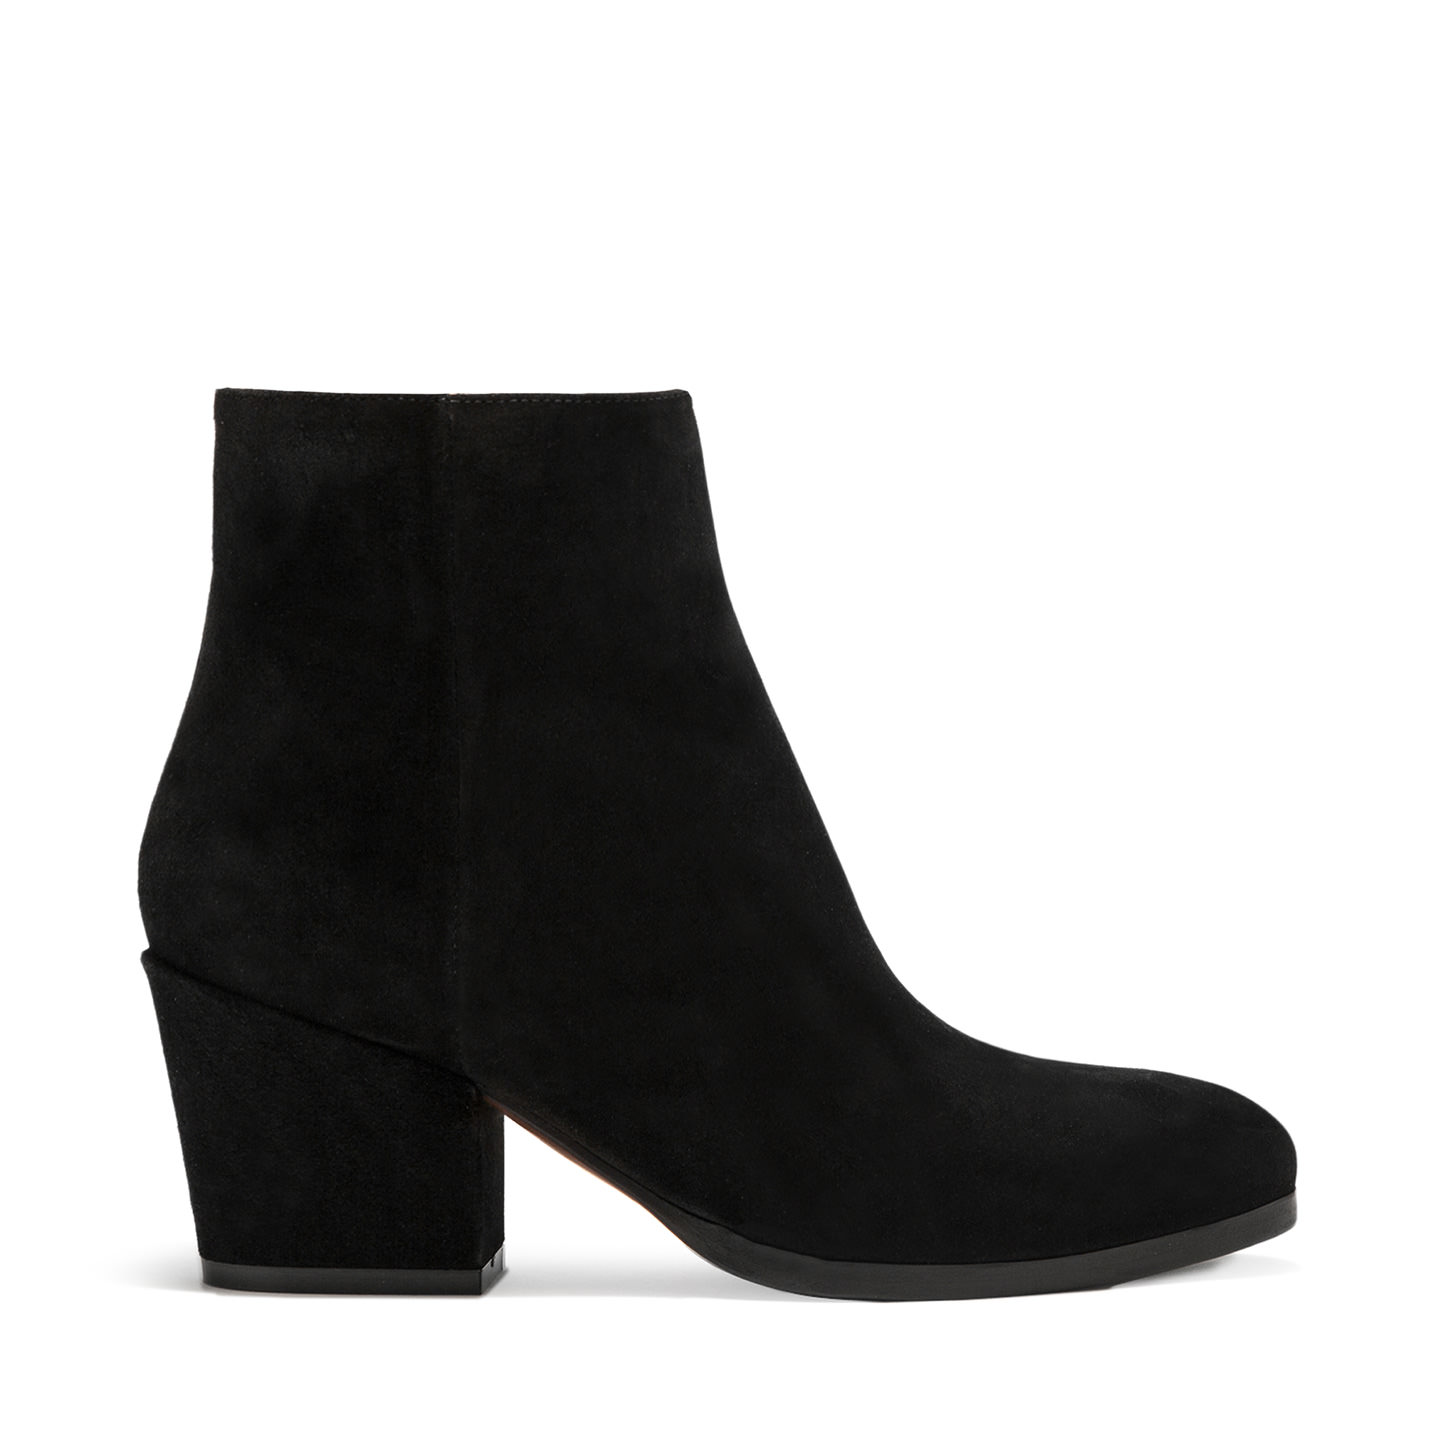 BUTTERO: BLACK SUEDE NEW YORK LOW TOP BOOTS